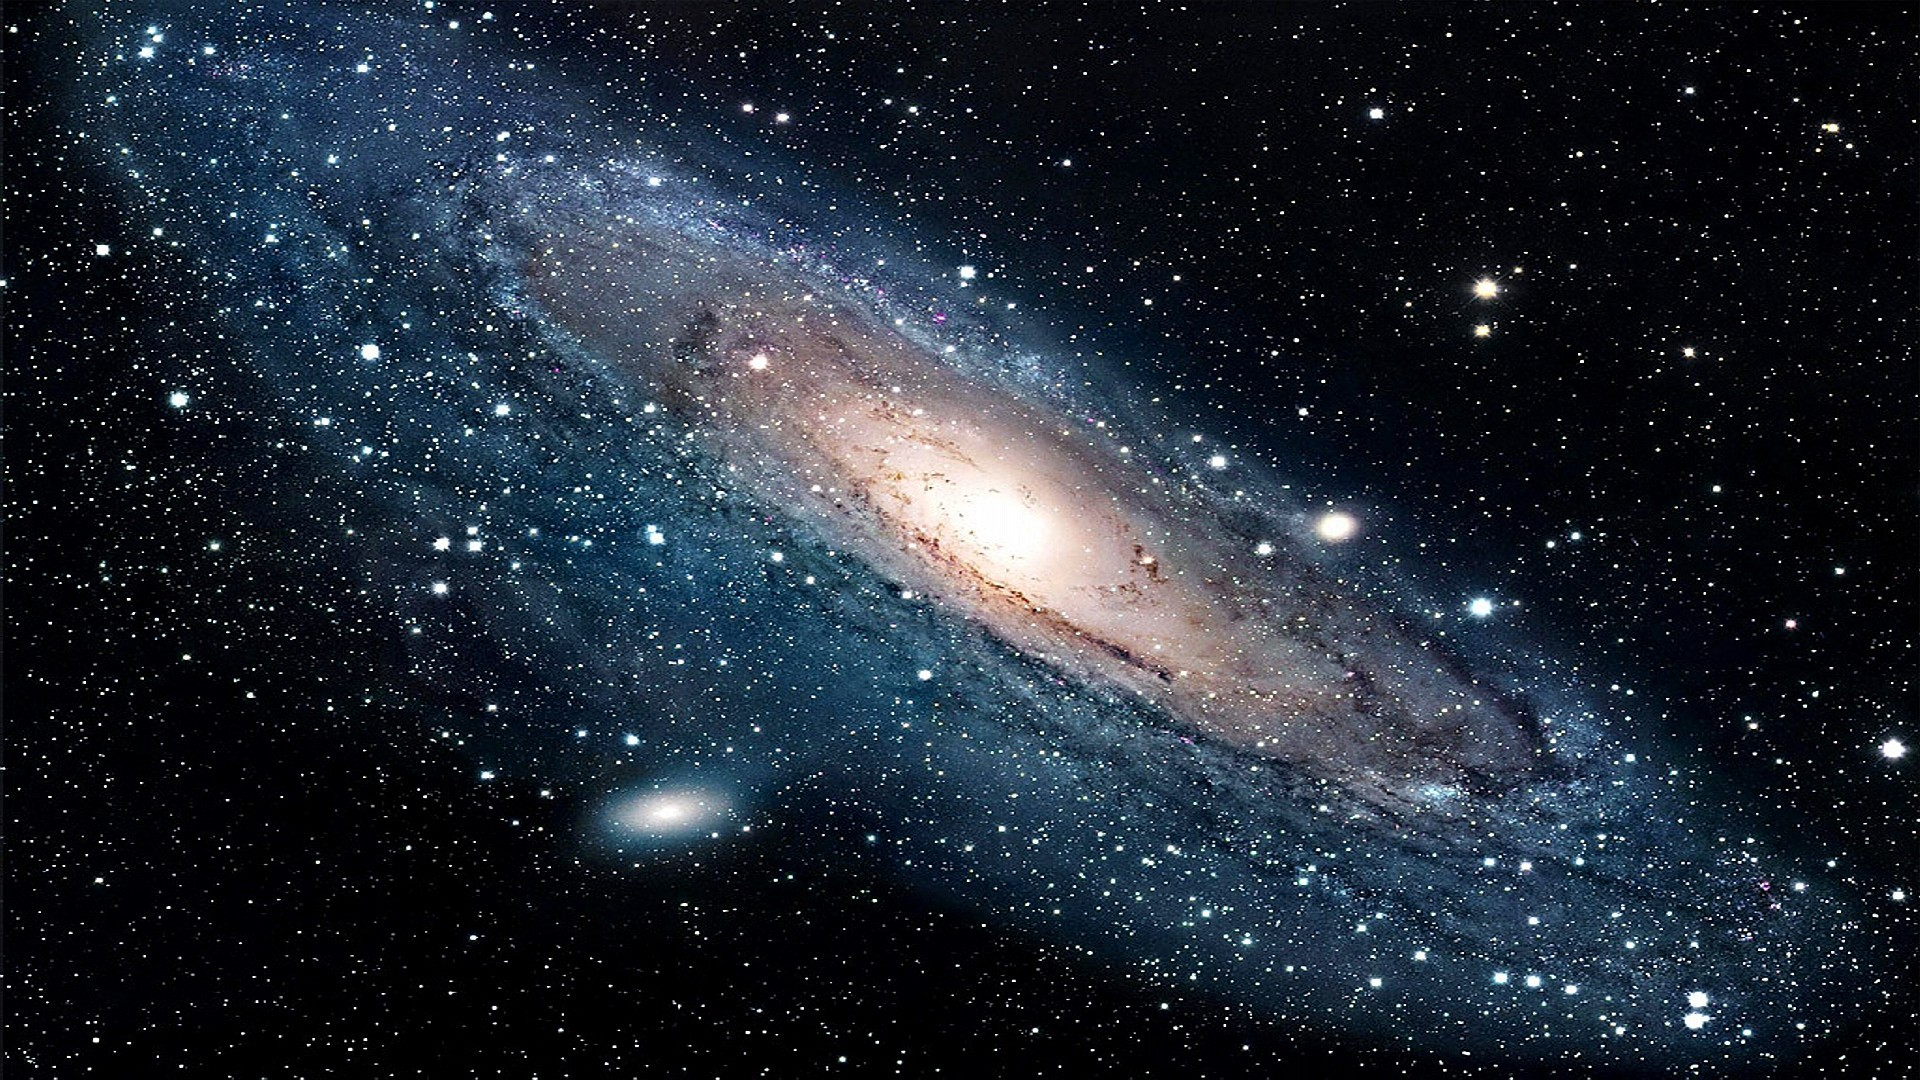 Galaxy Wallpaper Windows High Resolution 1920x1080